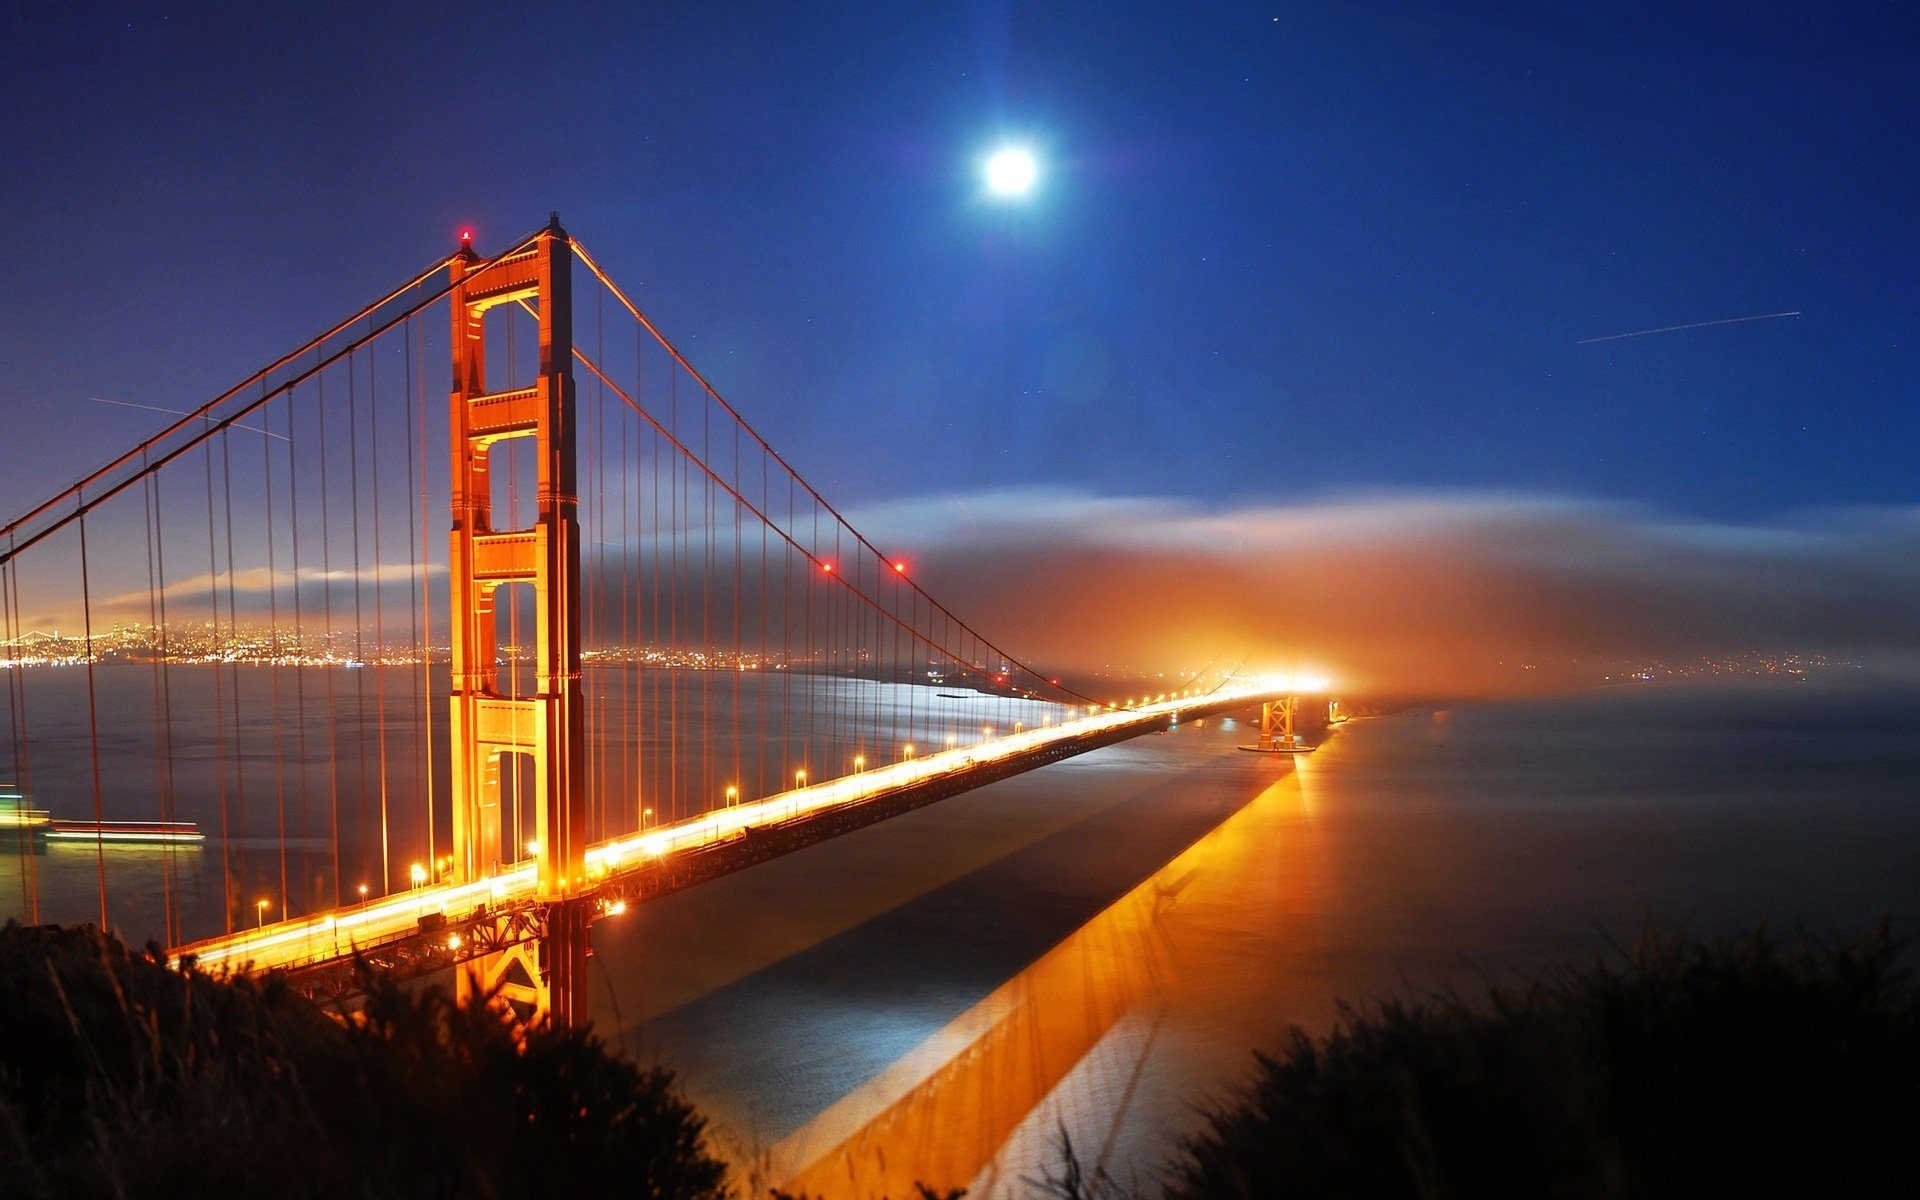 San Francisco Bridge Night Lights wallpaper